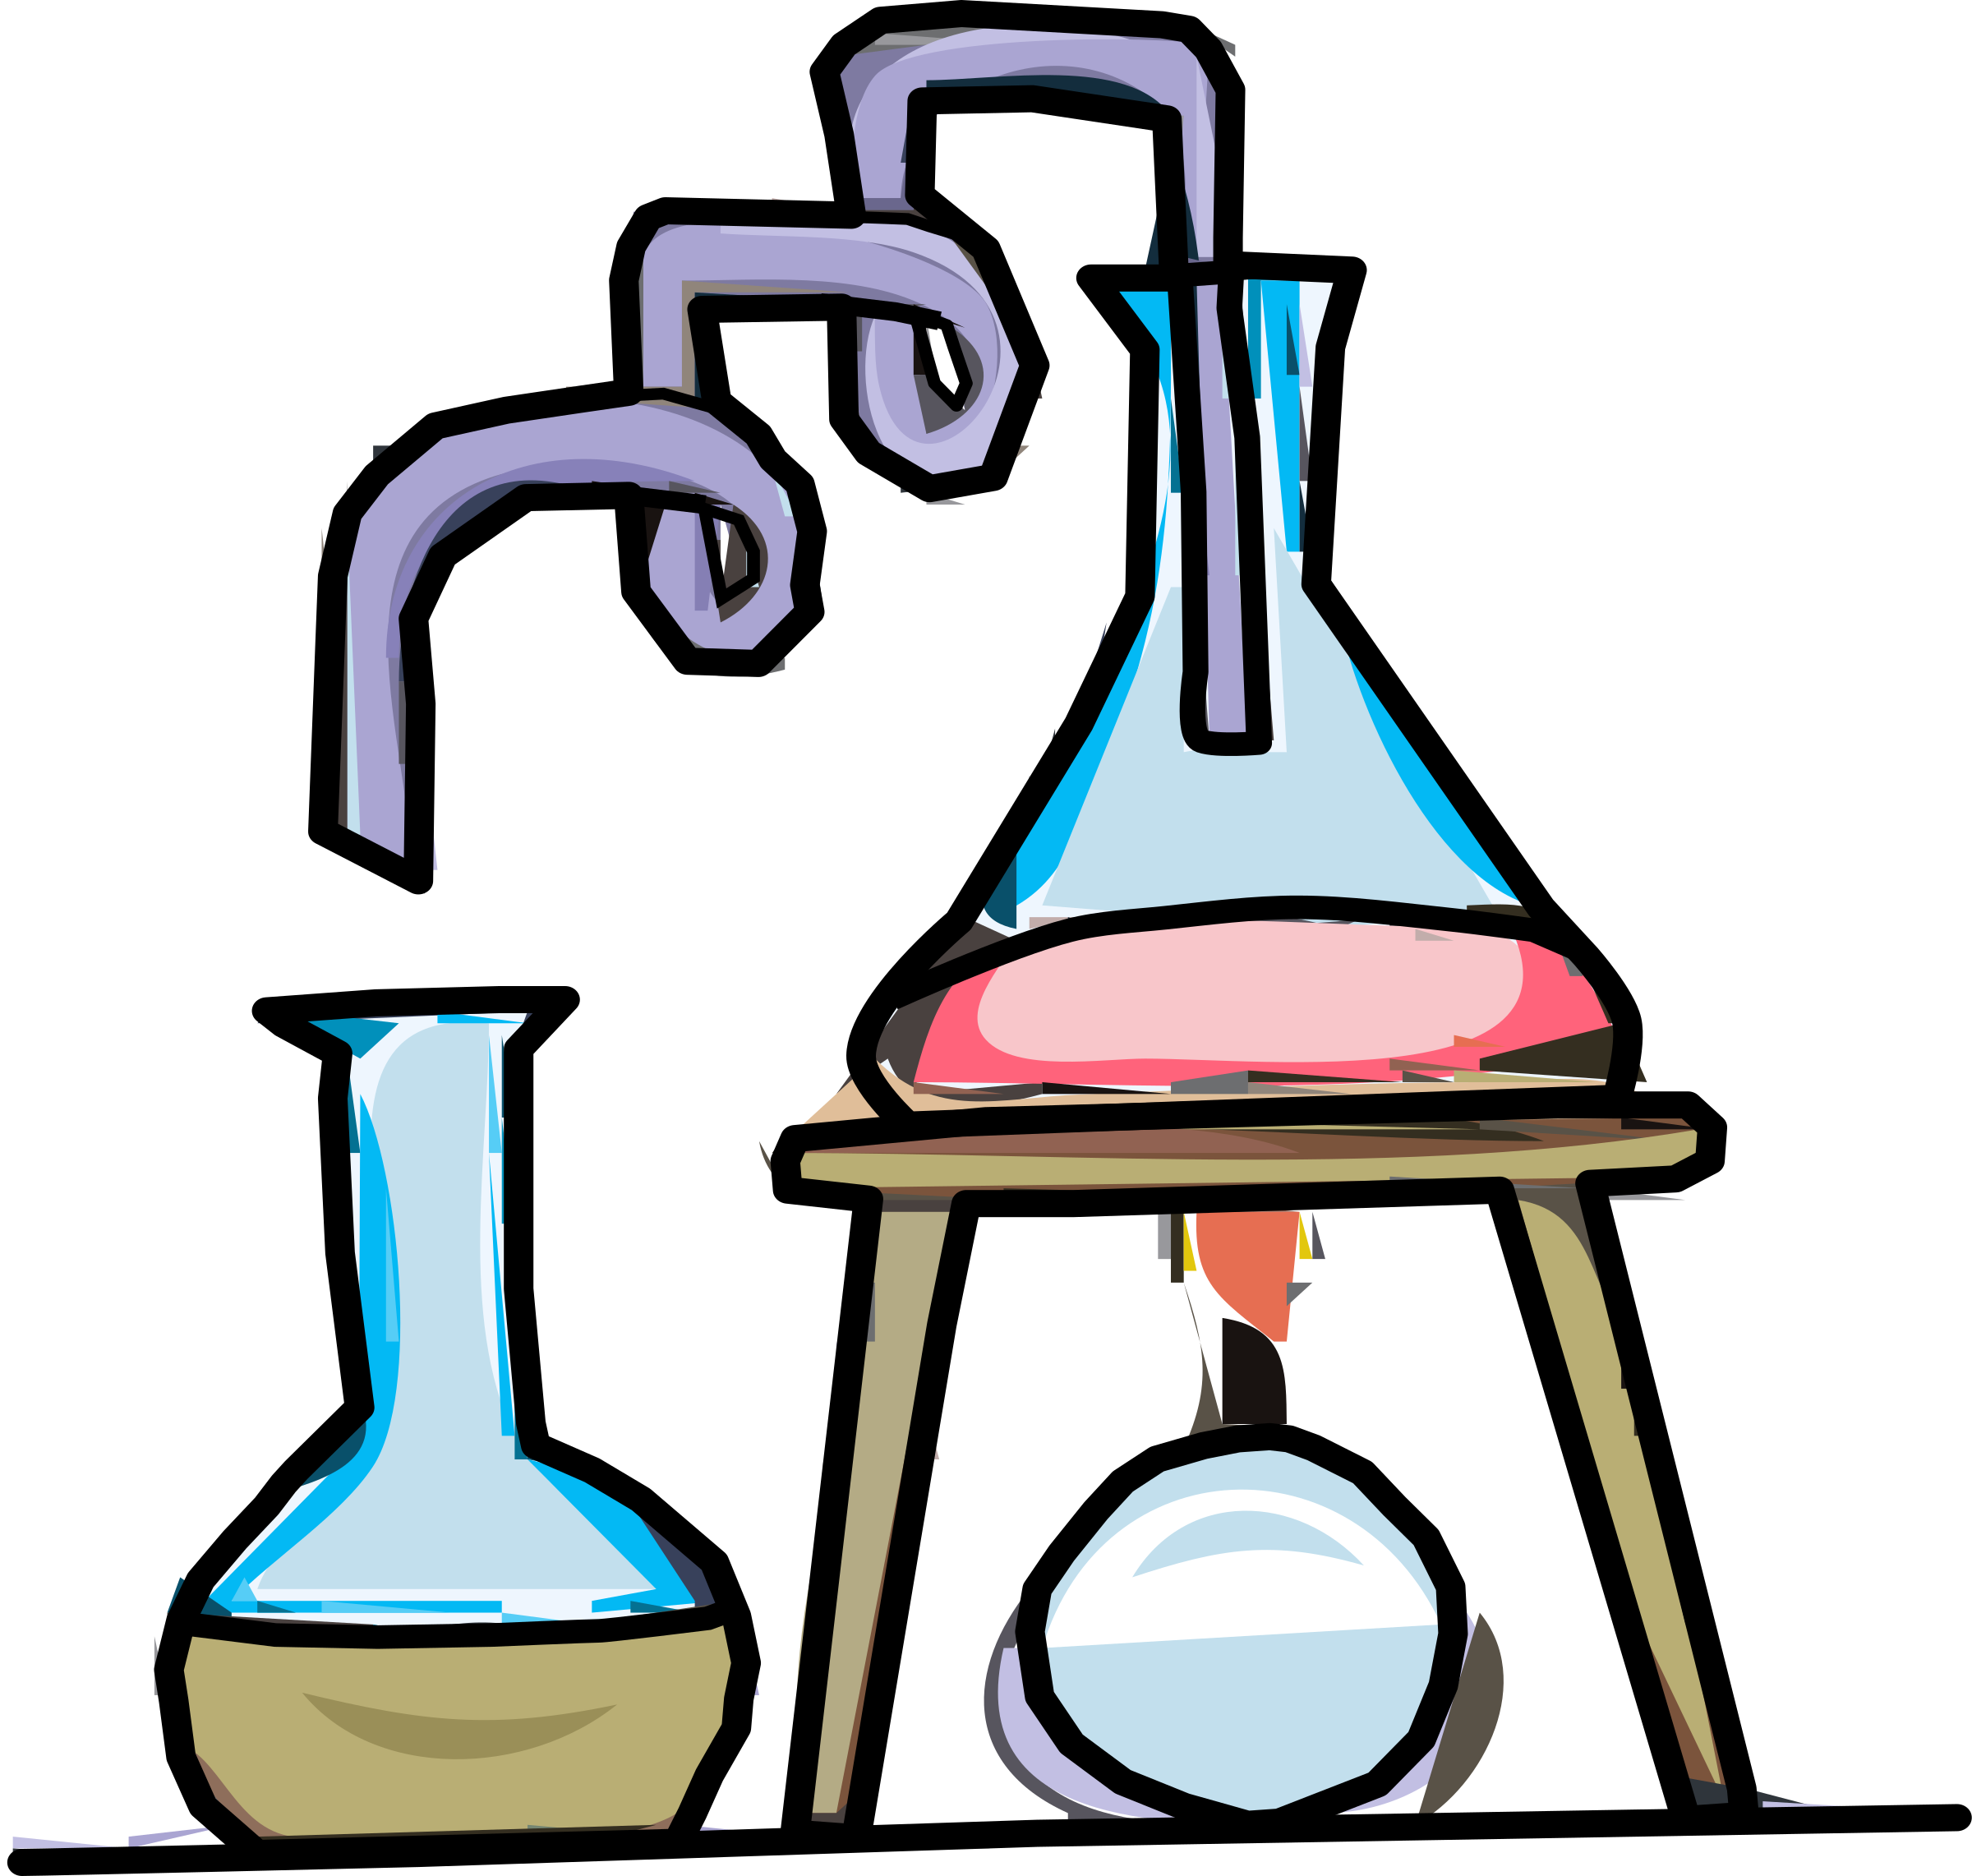 Science Test Tubes Laboratory Clip art.